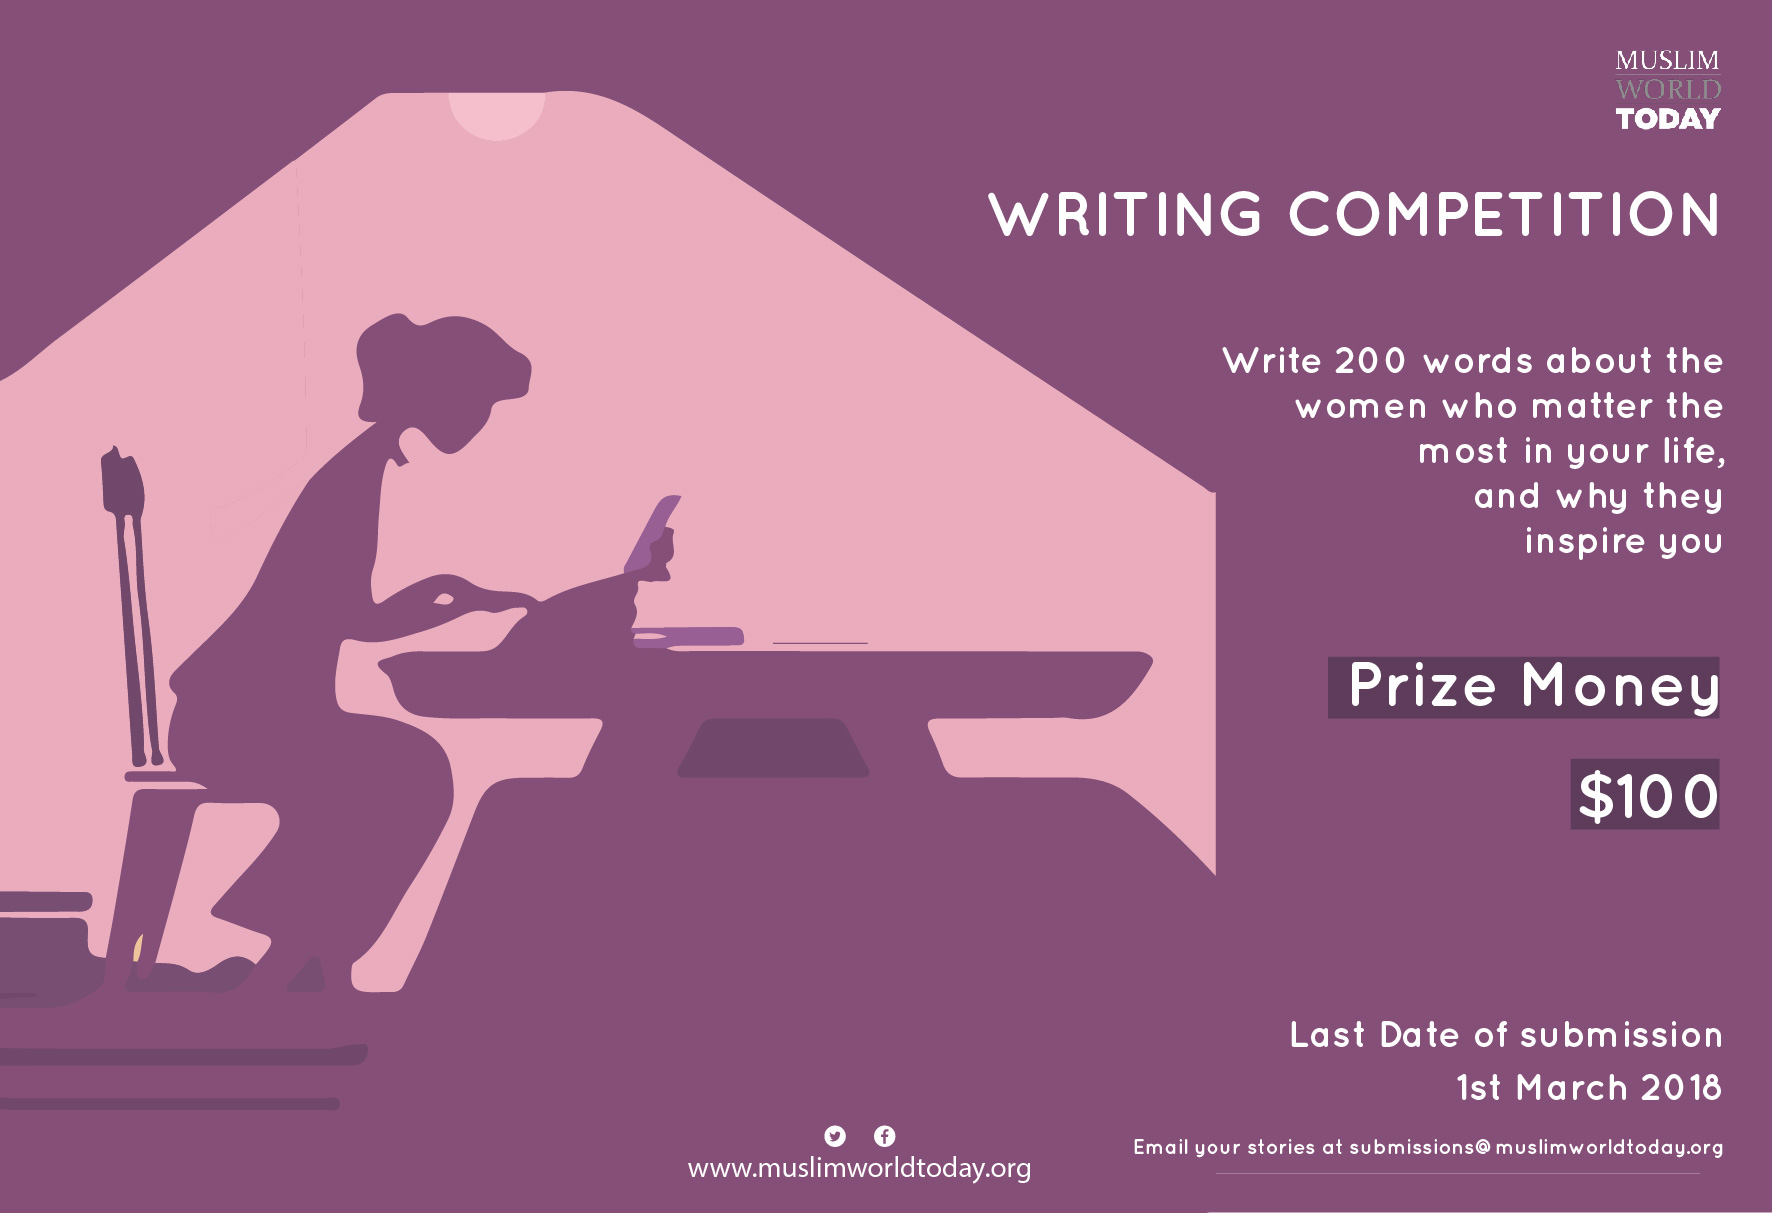 mwt_writing_competition_international_women_day.jpg